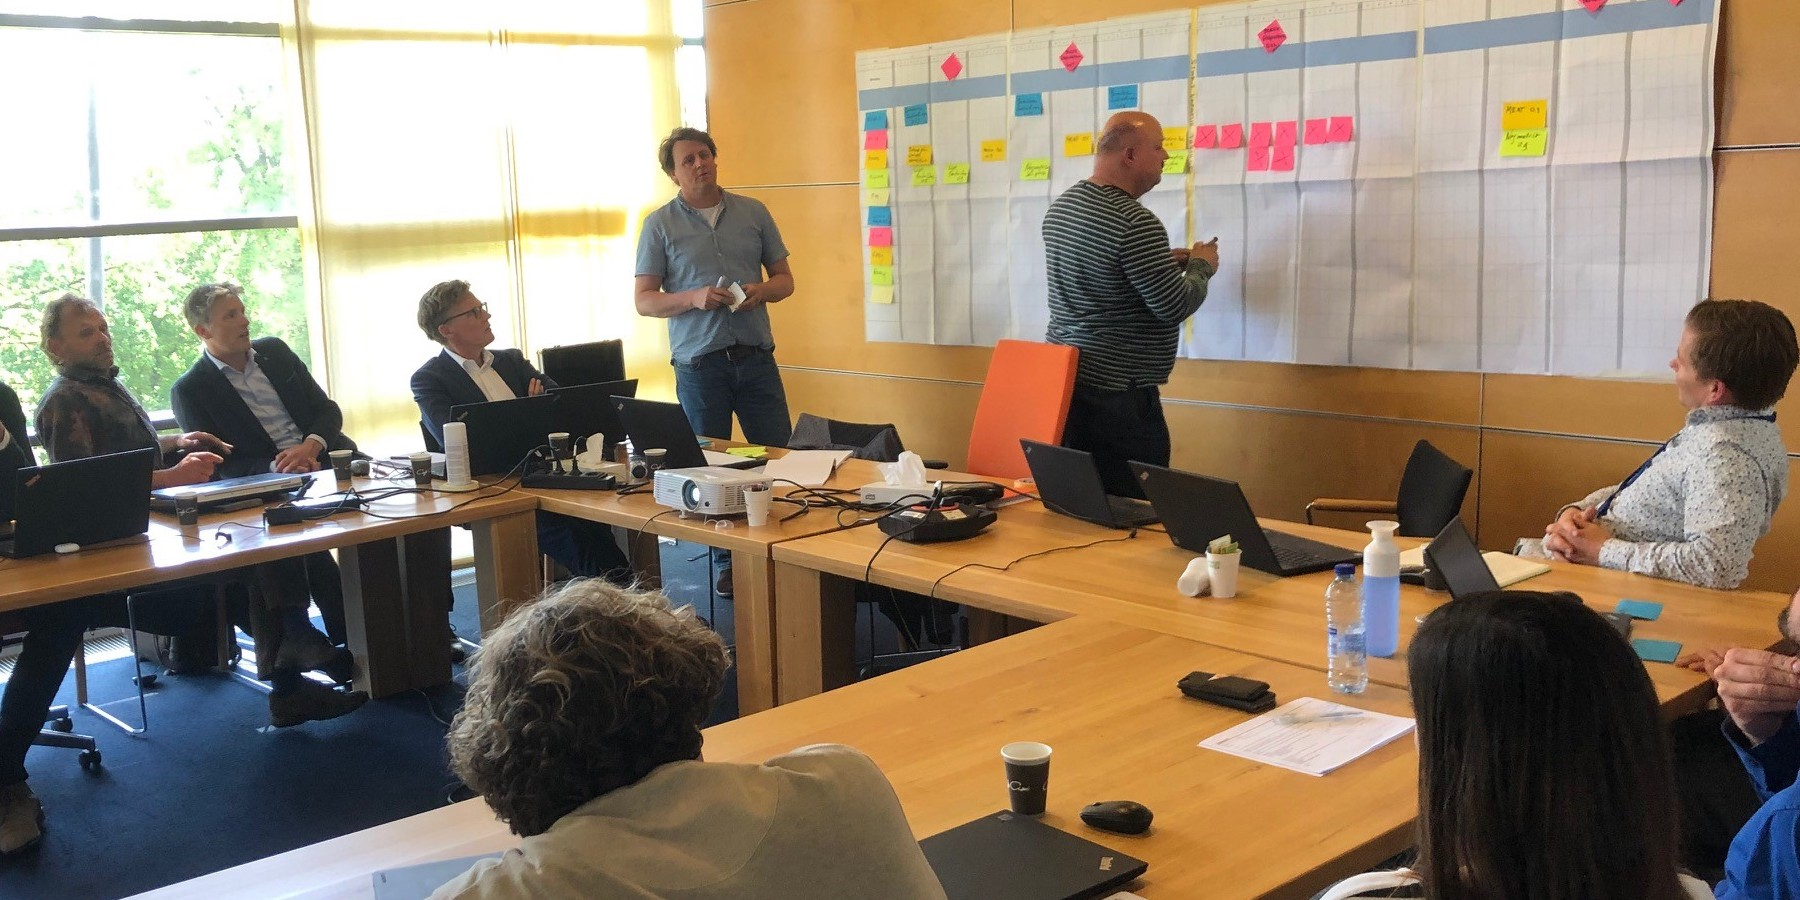 Lean planning is used at TenneT to better manage large infrastructure projects